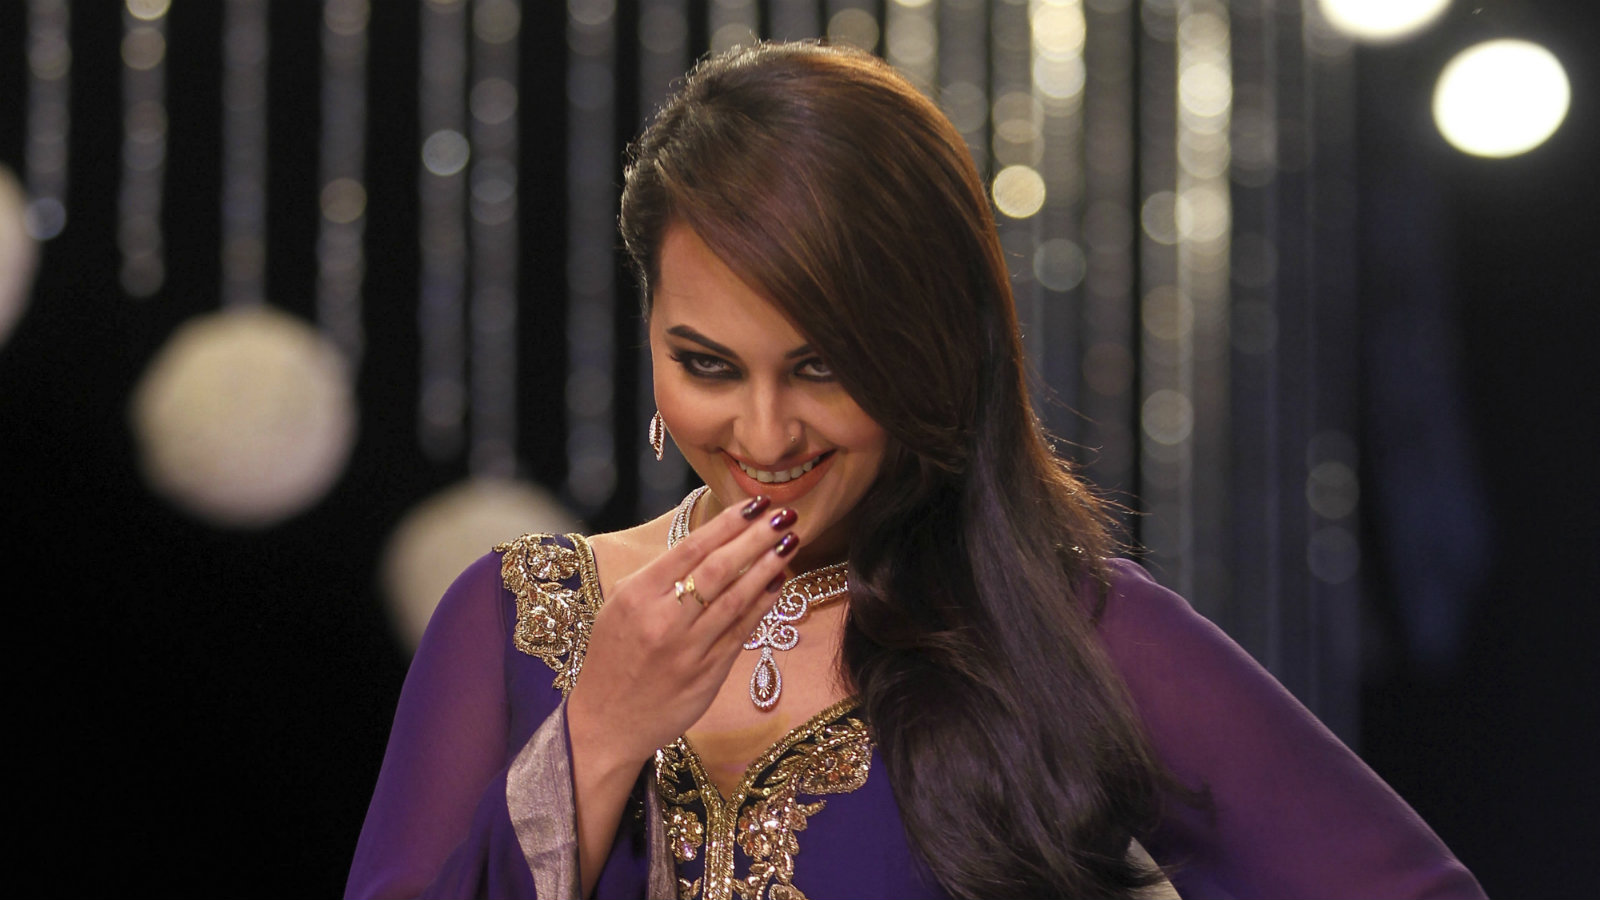 Bollywood actor Sonakshi Sinha gestures as she walks the ramp on the first day of the India International Jewelry Week in Mumbai, India, Sunday, Aug. 4, 2013.